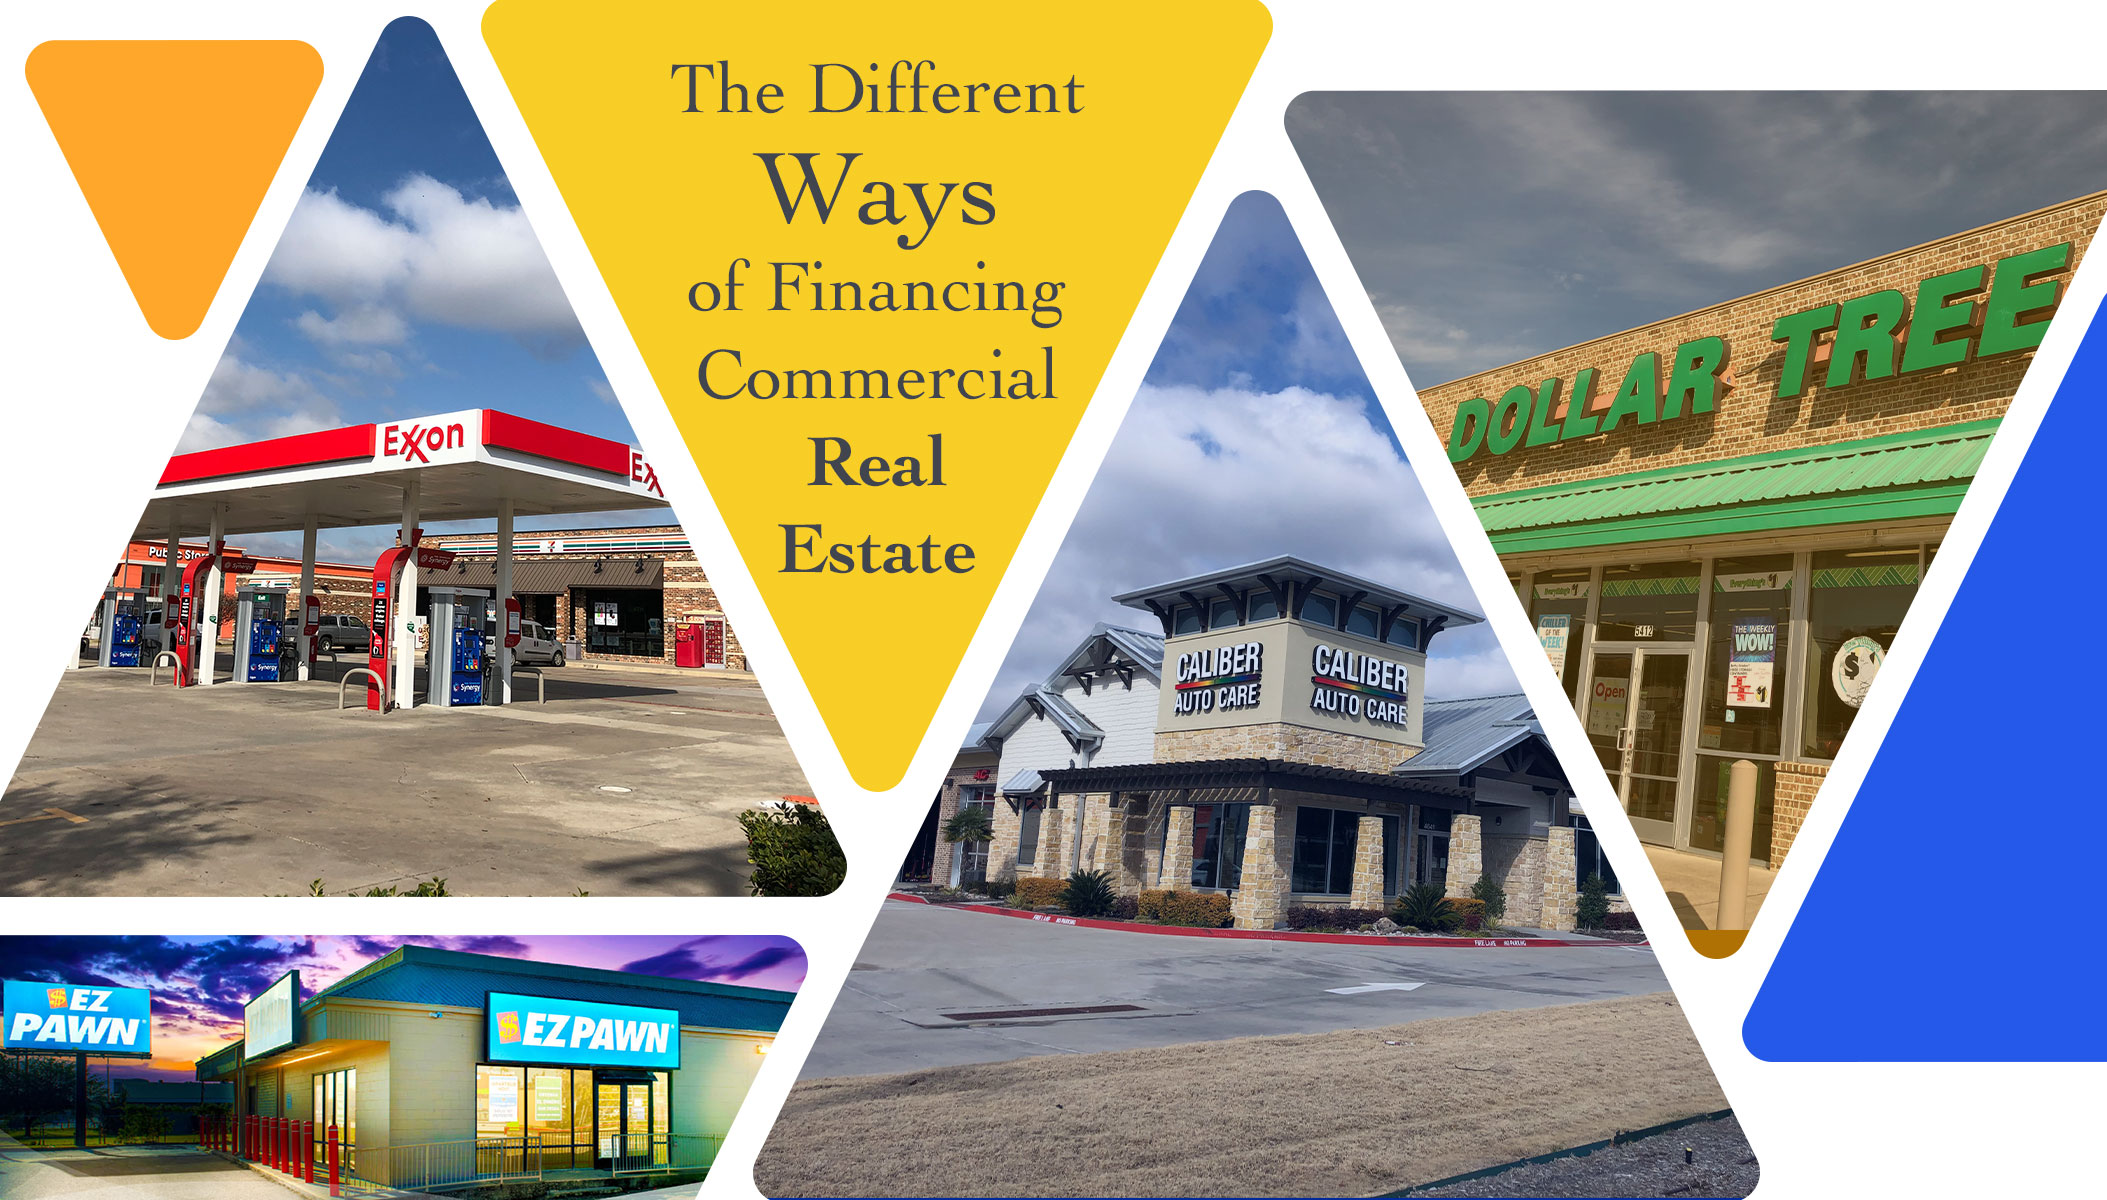 Picture with Different Ways of Financing Commercial Real Estate text and pictures of Exxon gas station and Caliber Automotive and Dollar Tree